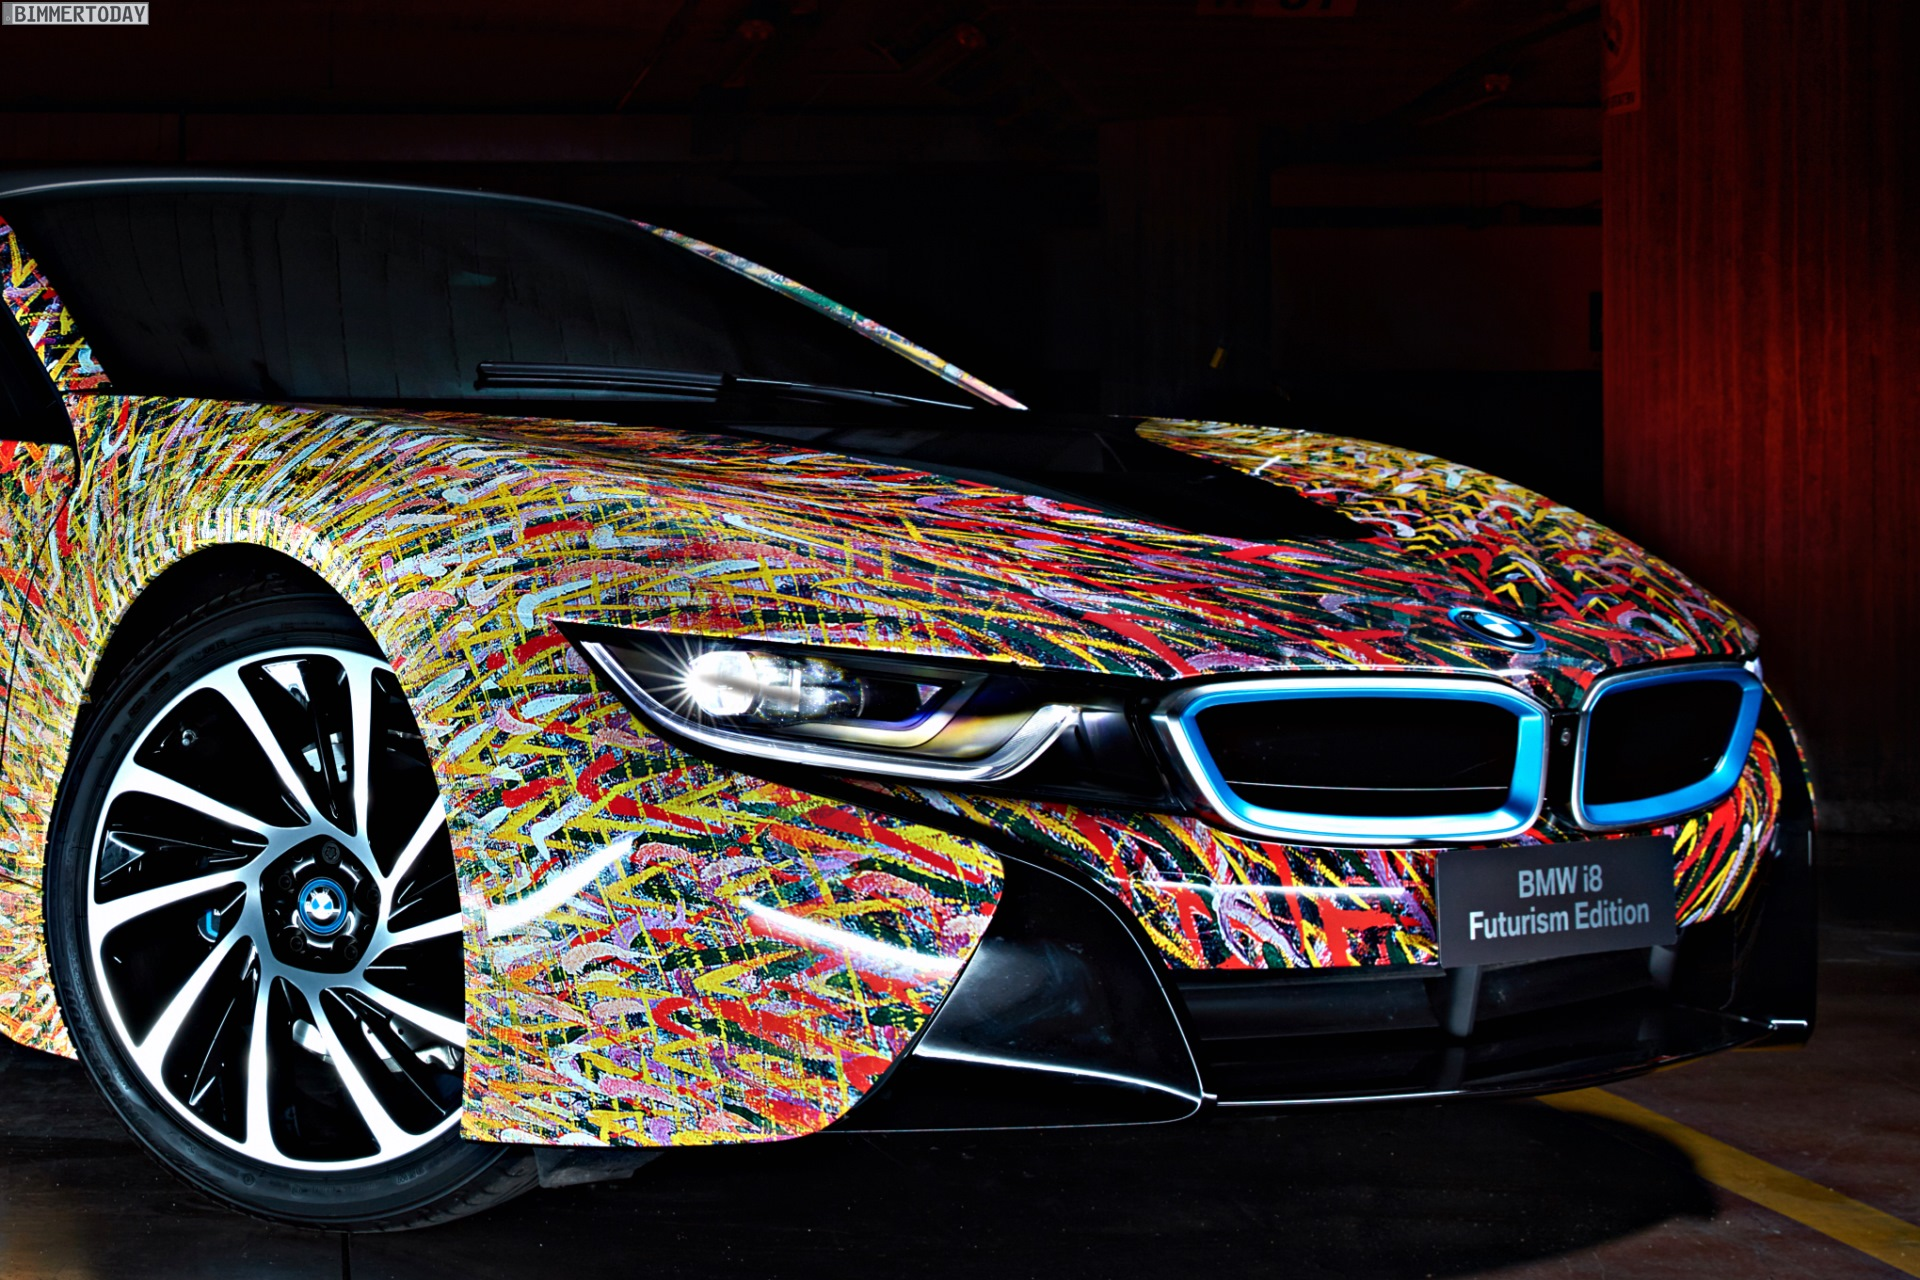 Magdalena Neuner Bmw Marken Botschafterin Wintersport furthermore D Design Bmw Er G Tuning G furthermore Bmw M Sedan Interior furthermore Bmdi as well Ind Bmw Z M Coupe. on bmw z4 m coupe